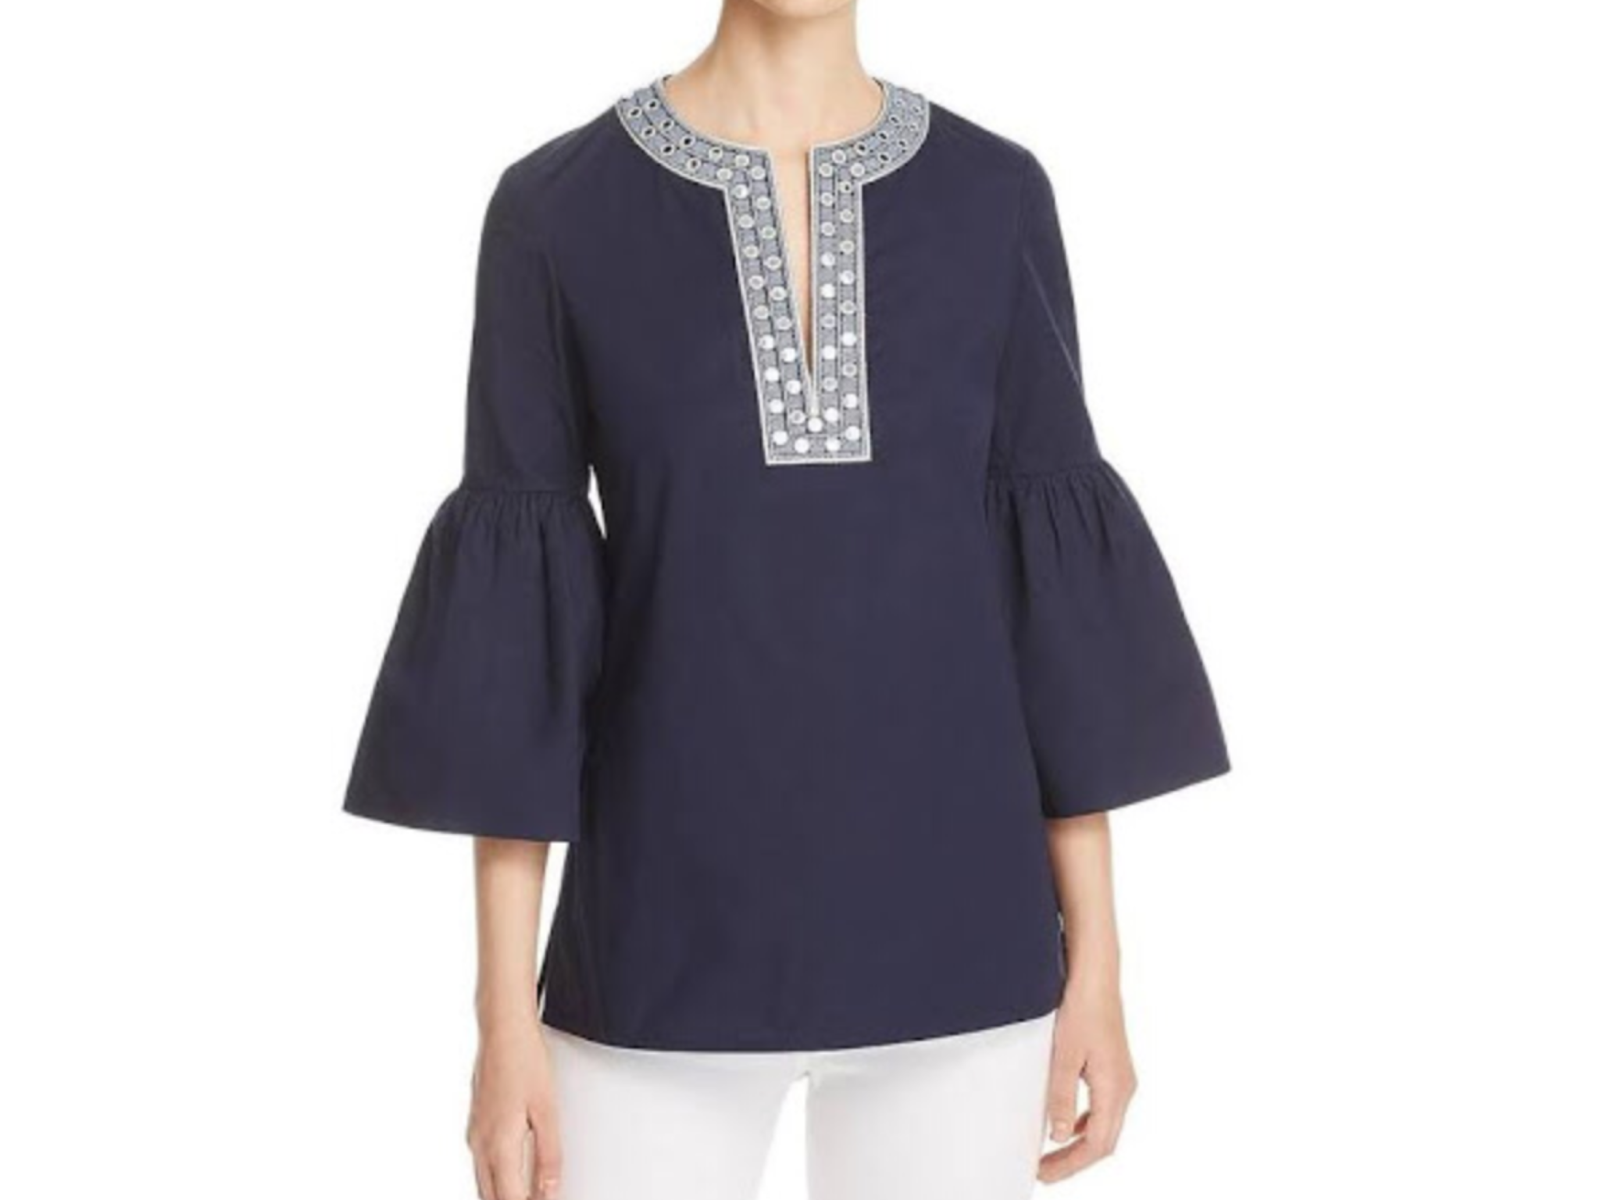 Tory Burch ARIANA Bell Sleeve Embroiderot Tunic in Navy, NWT, orig 298 sz.6